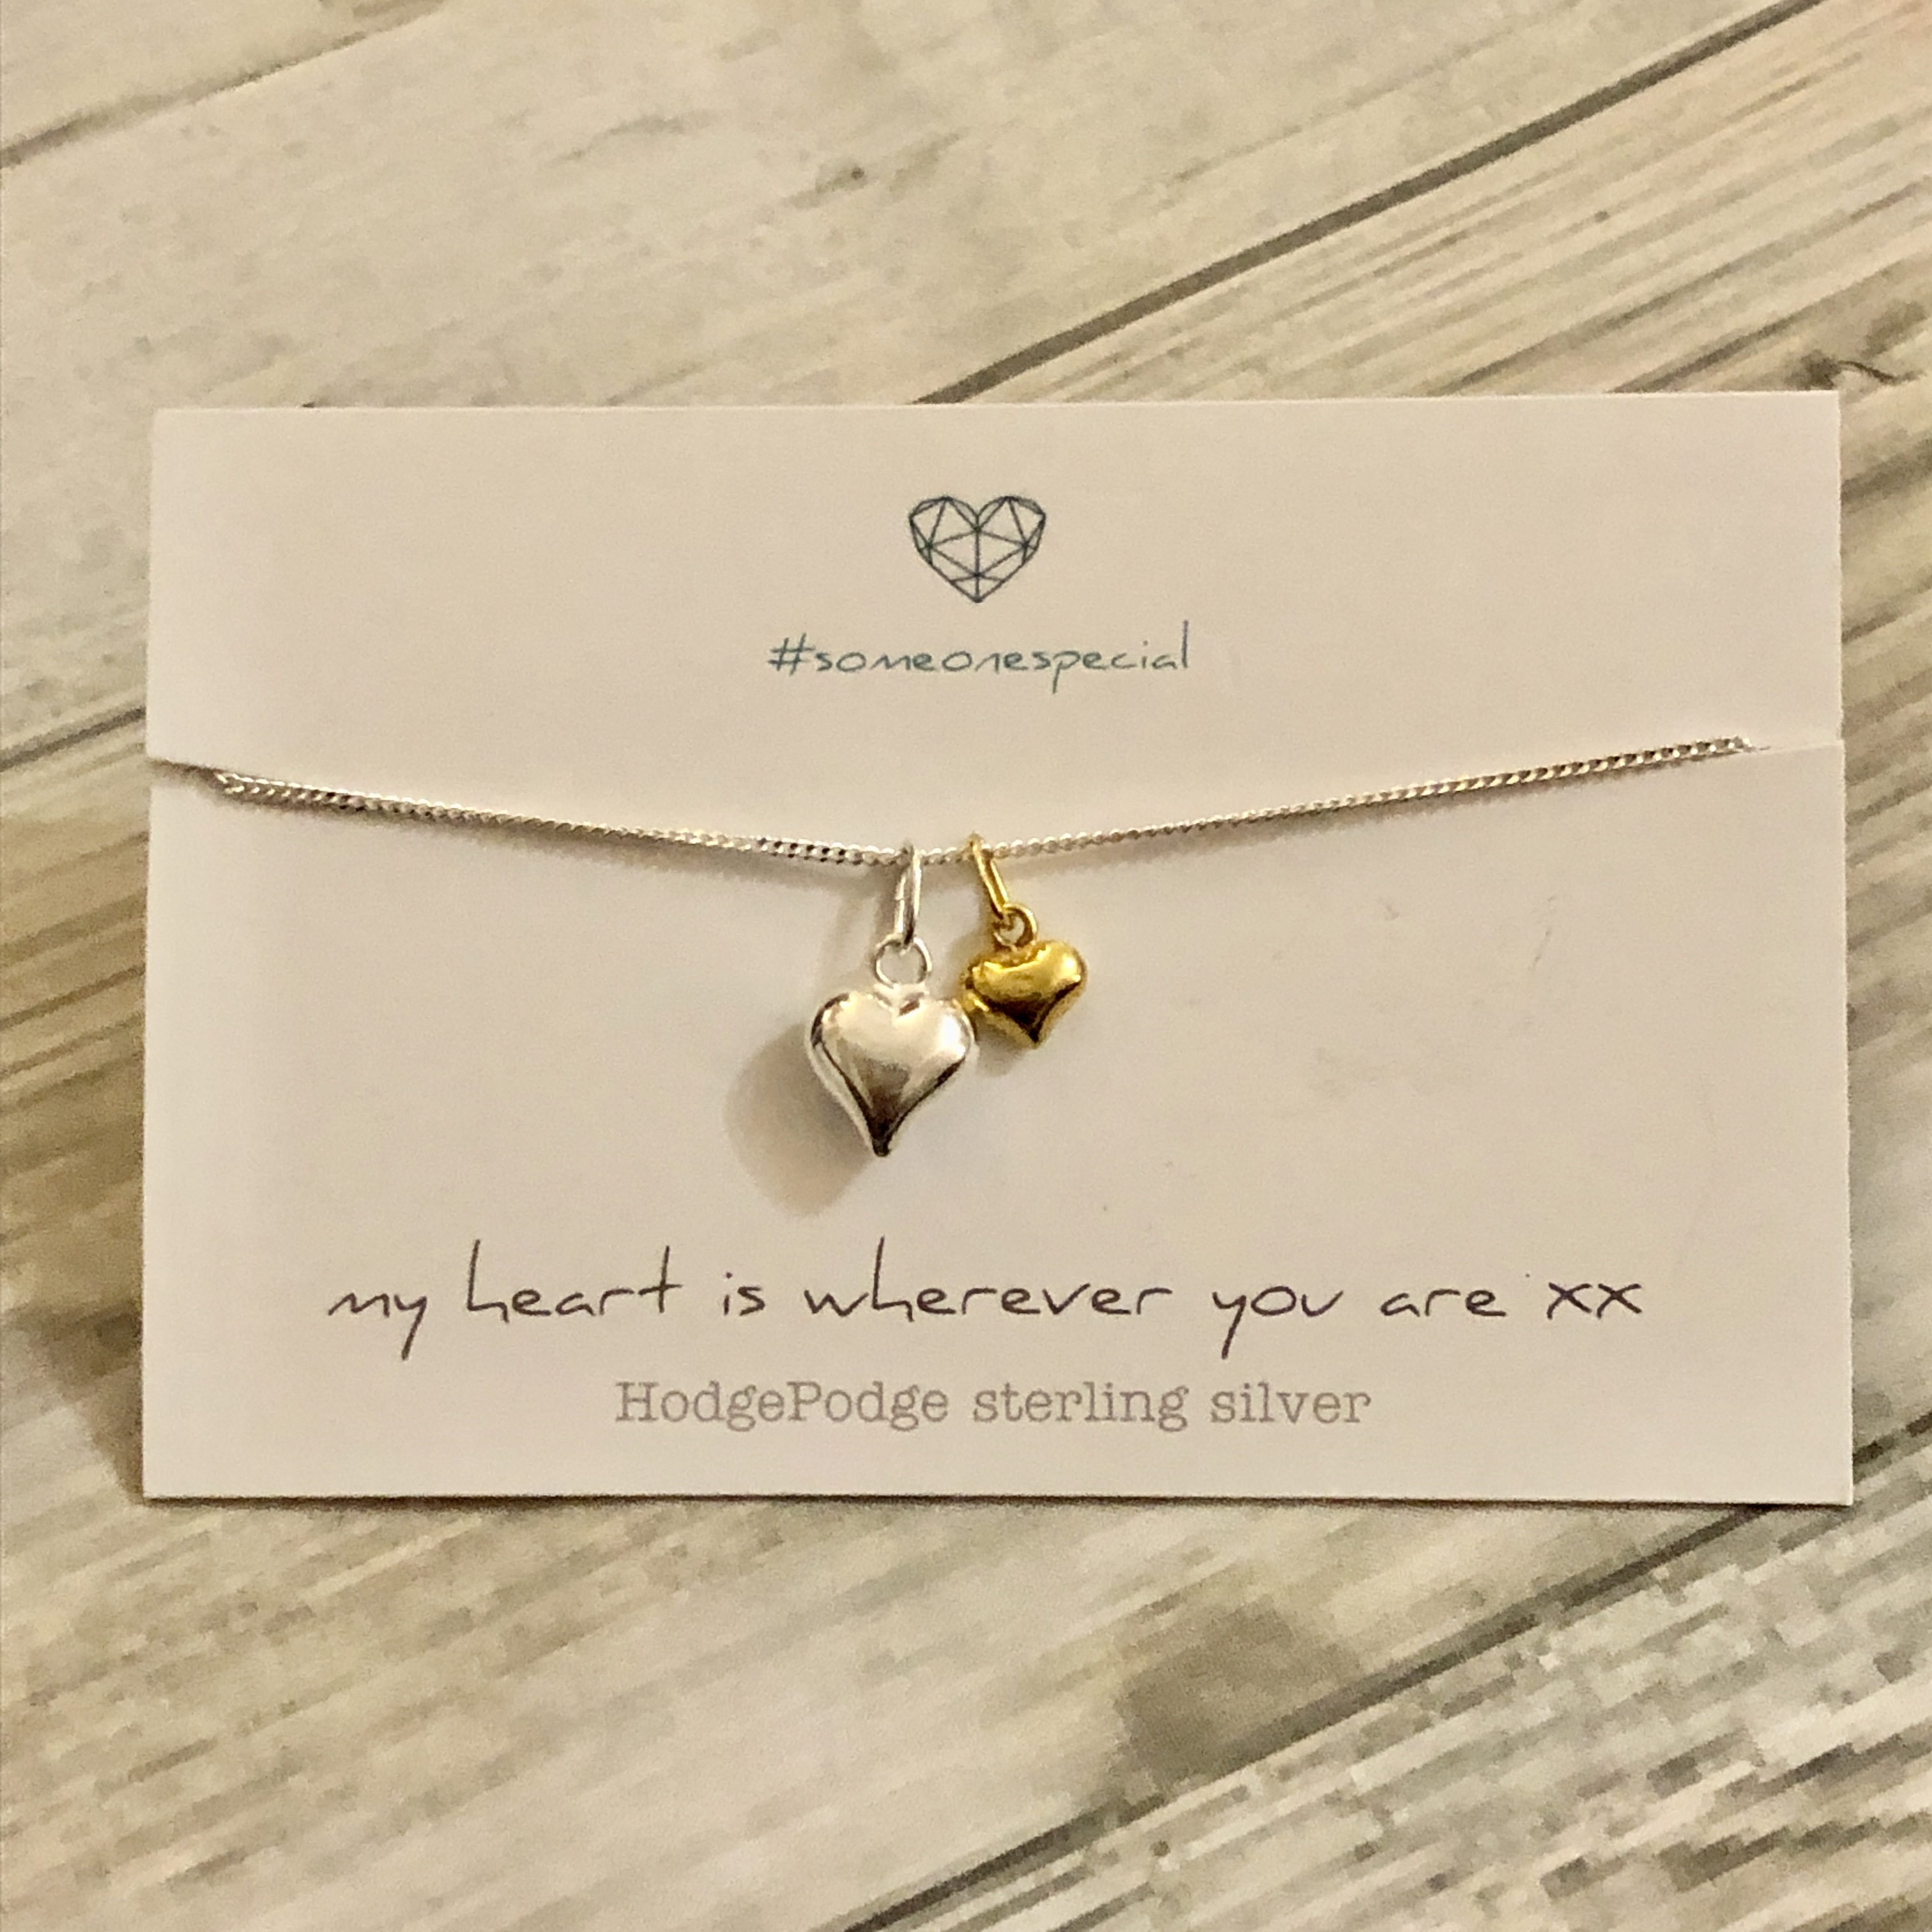 Double heart sterling silver and gold plate necklace. My heart is wherever you are.